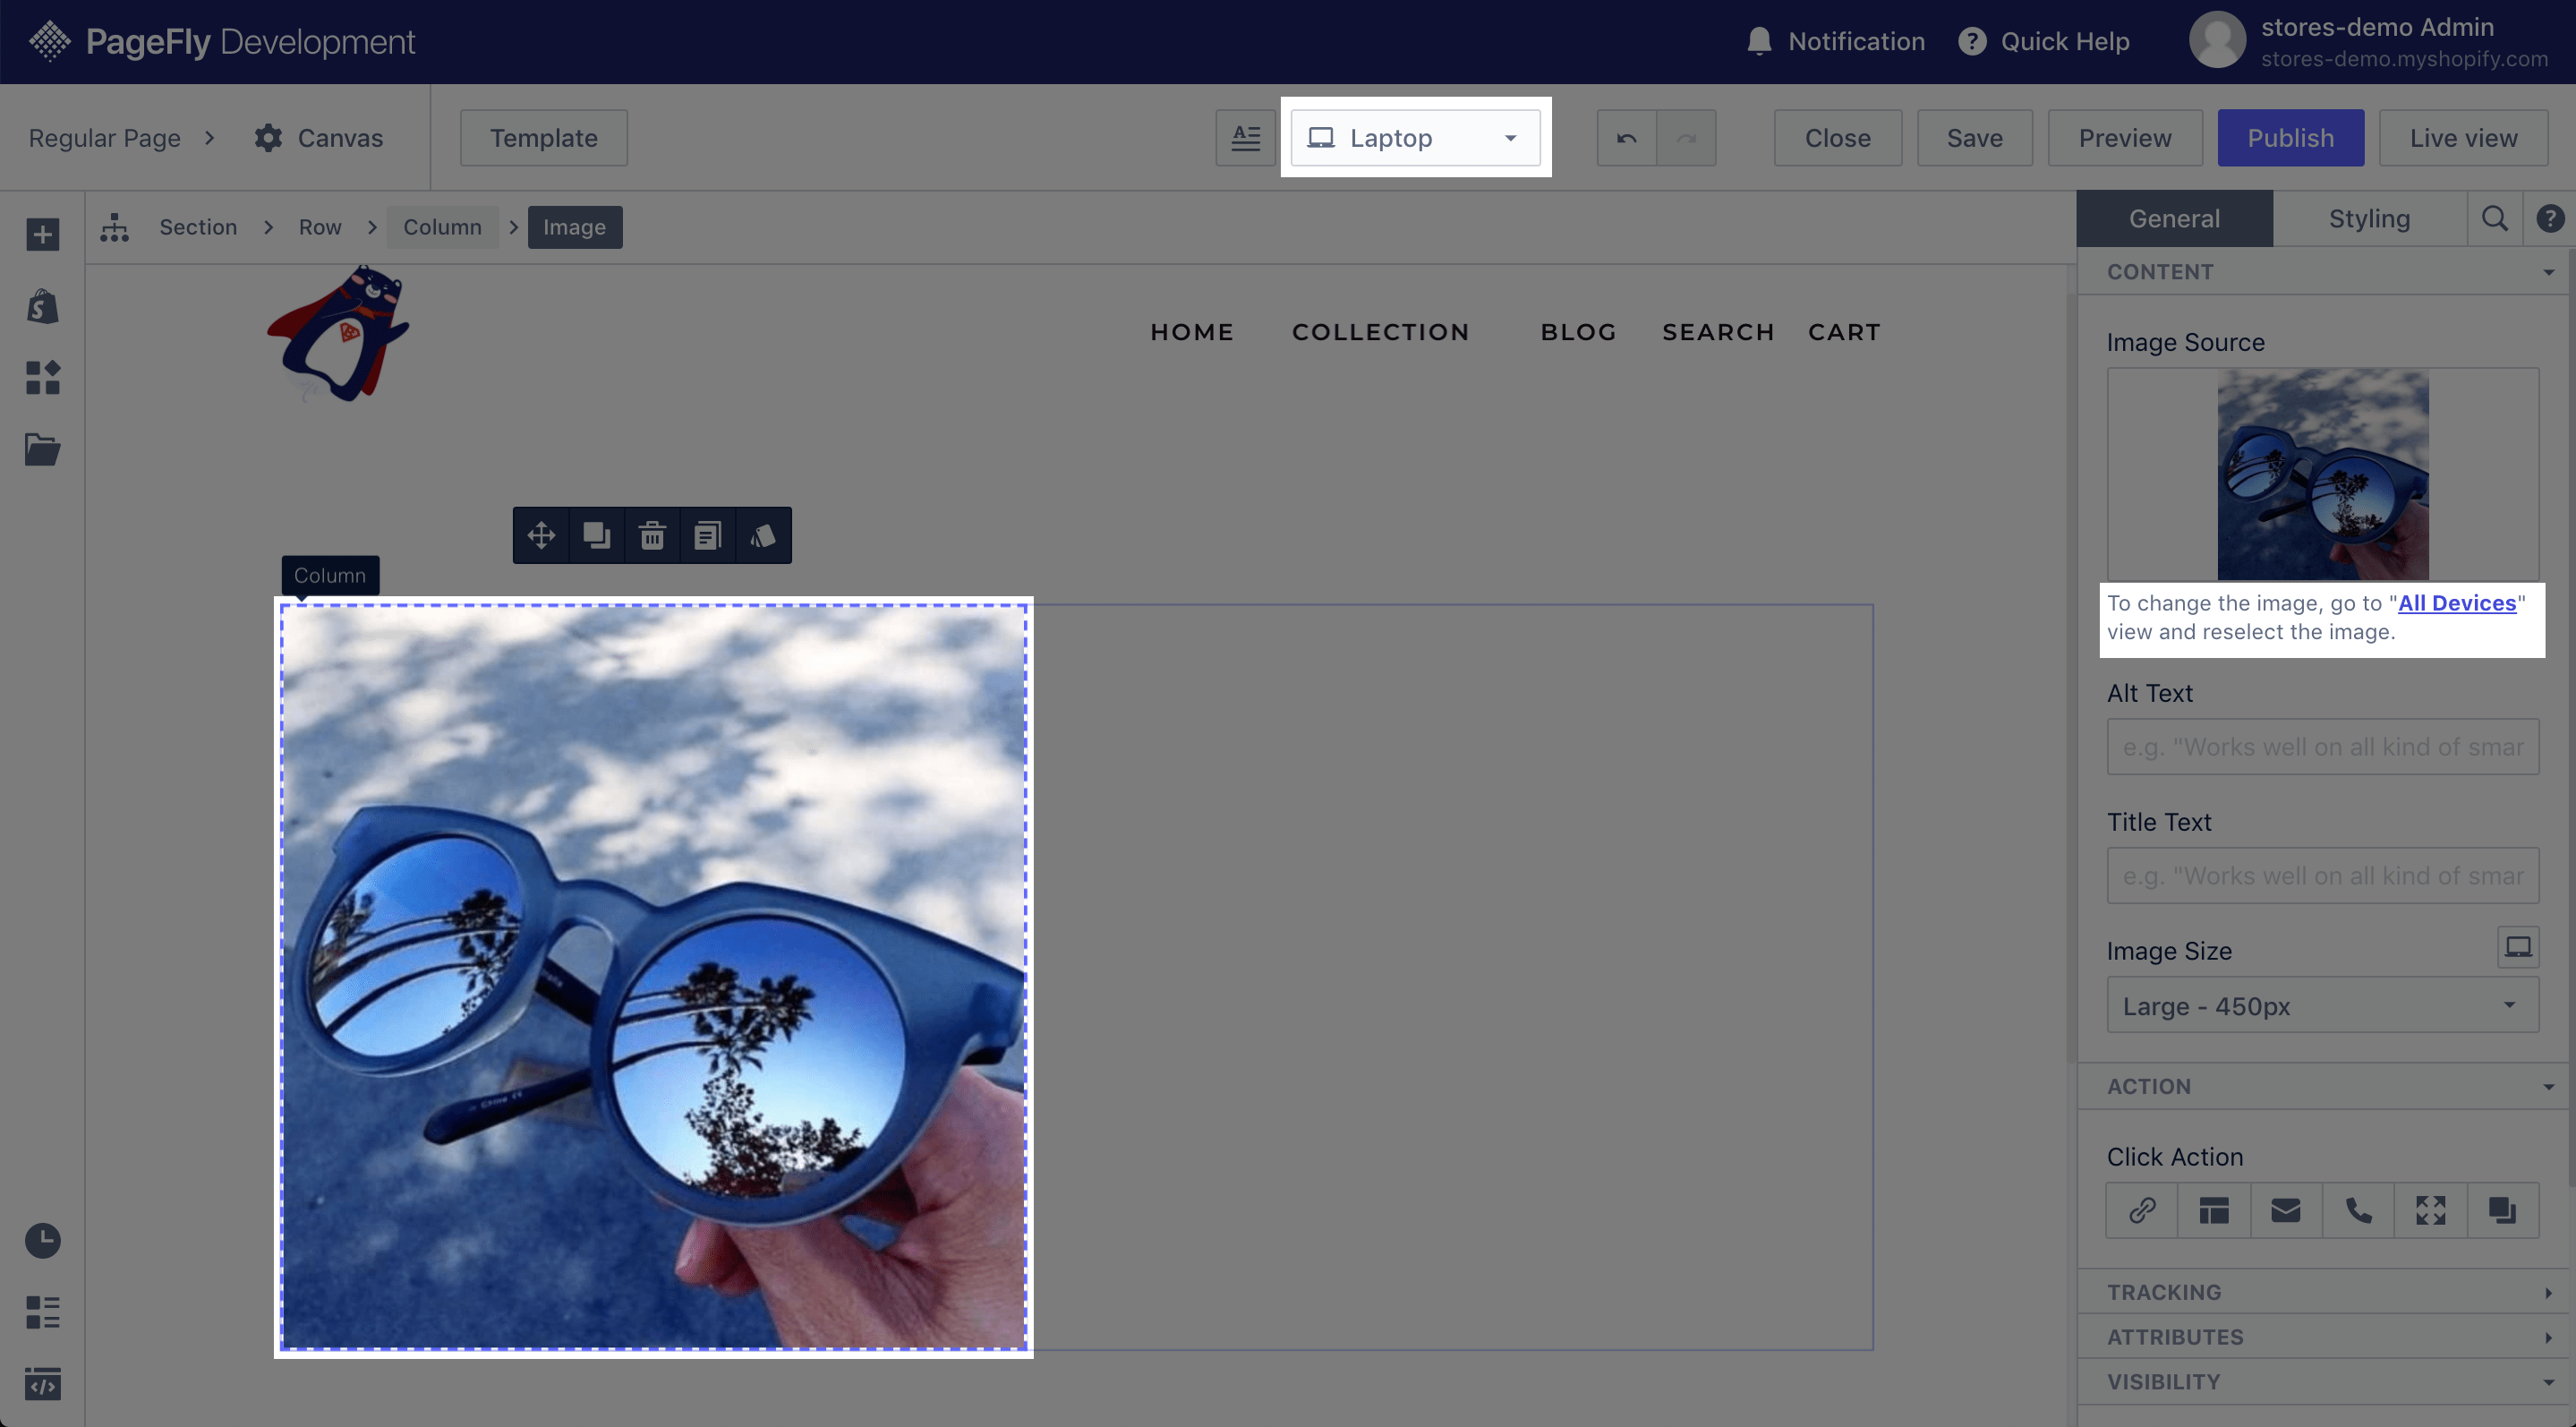 pagefly image element 2